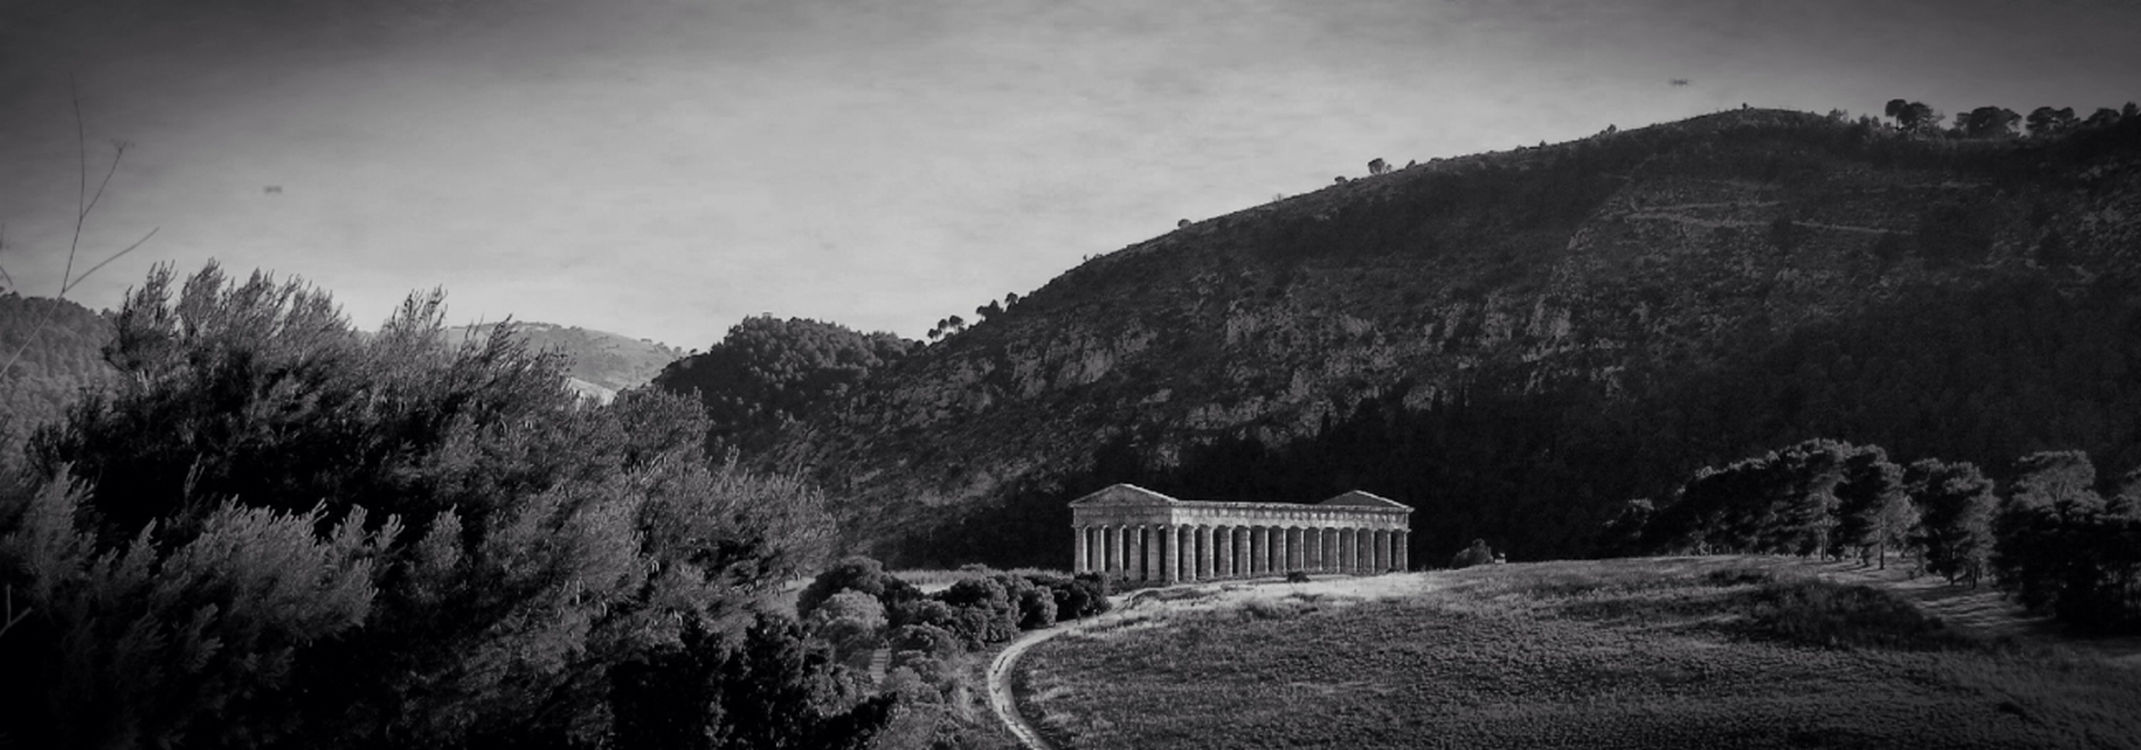 blackandwhite at Tempio Di Segesta by Stabiano